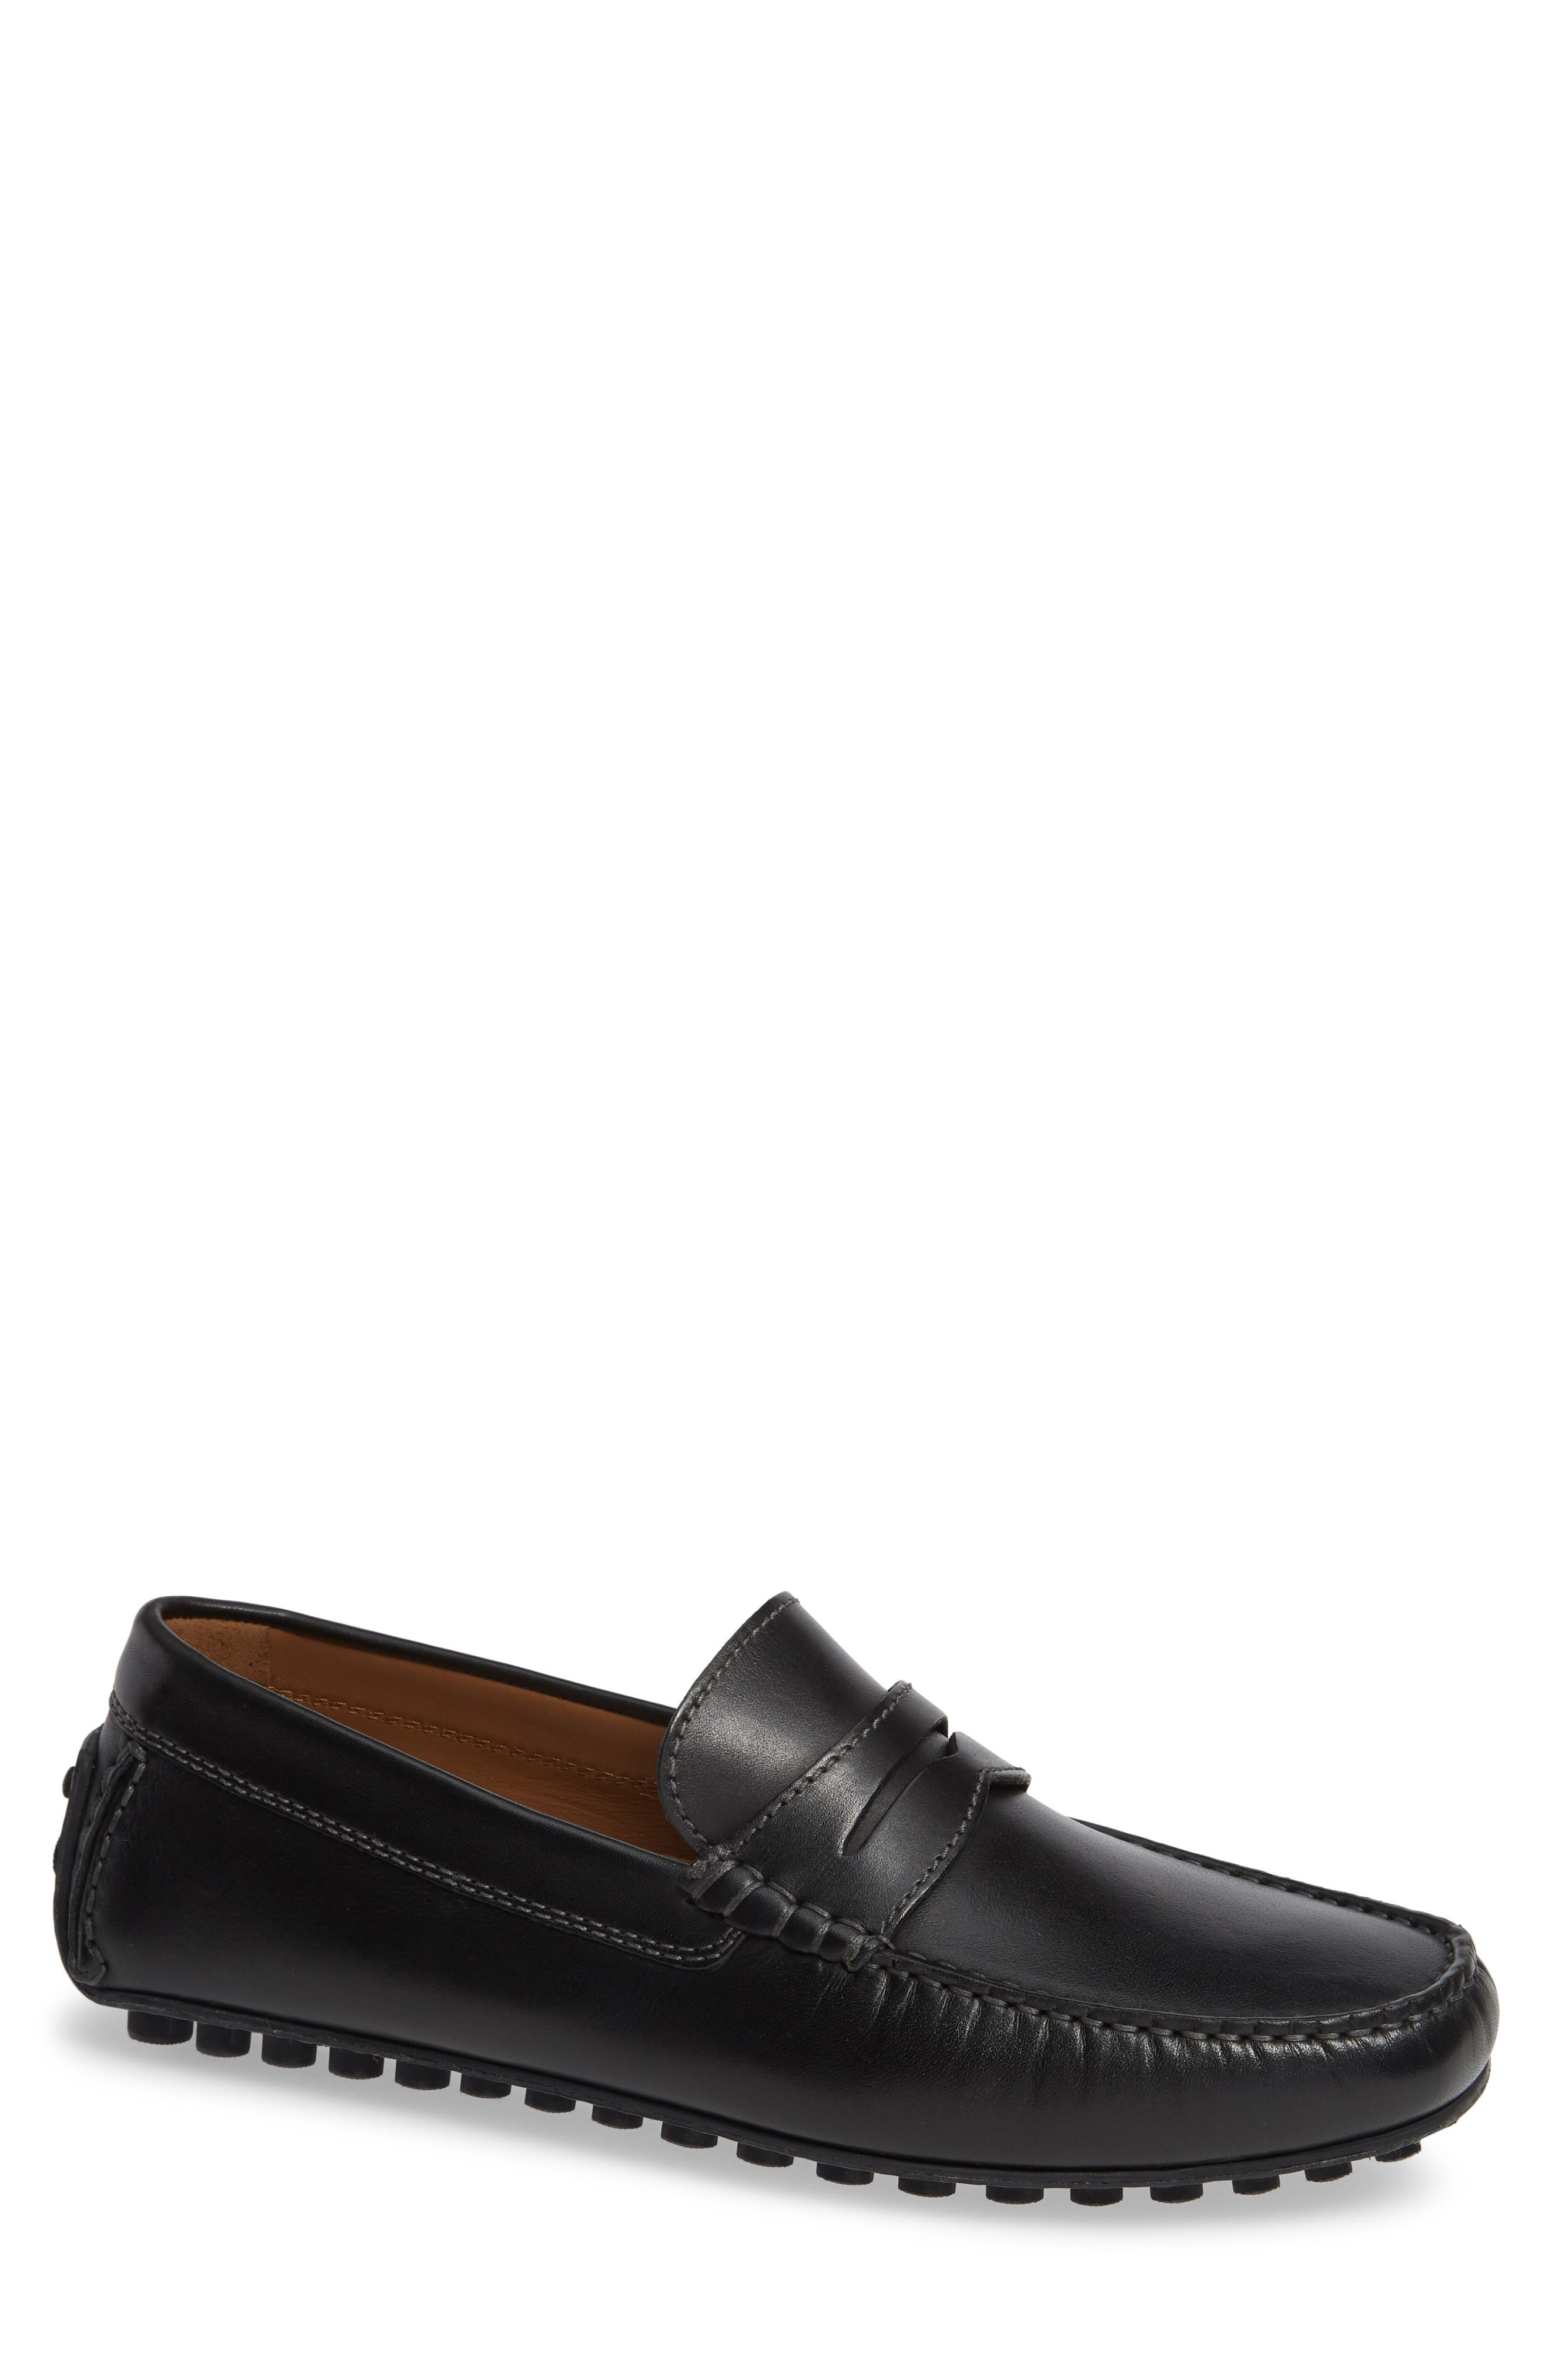 Le Mans Penny Driving Moccasin,                             Main thumbnail 1, color,                             BLACK LEATHER